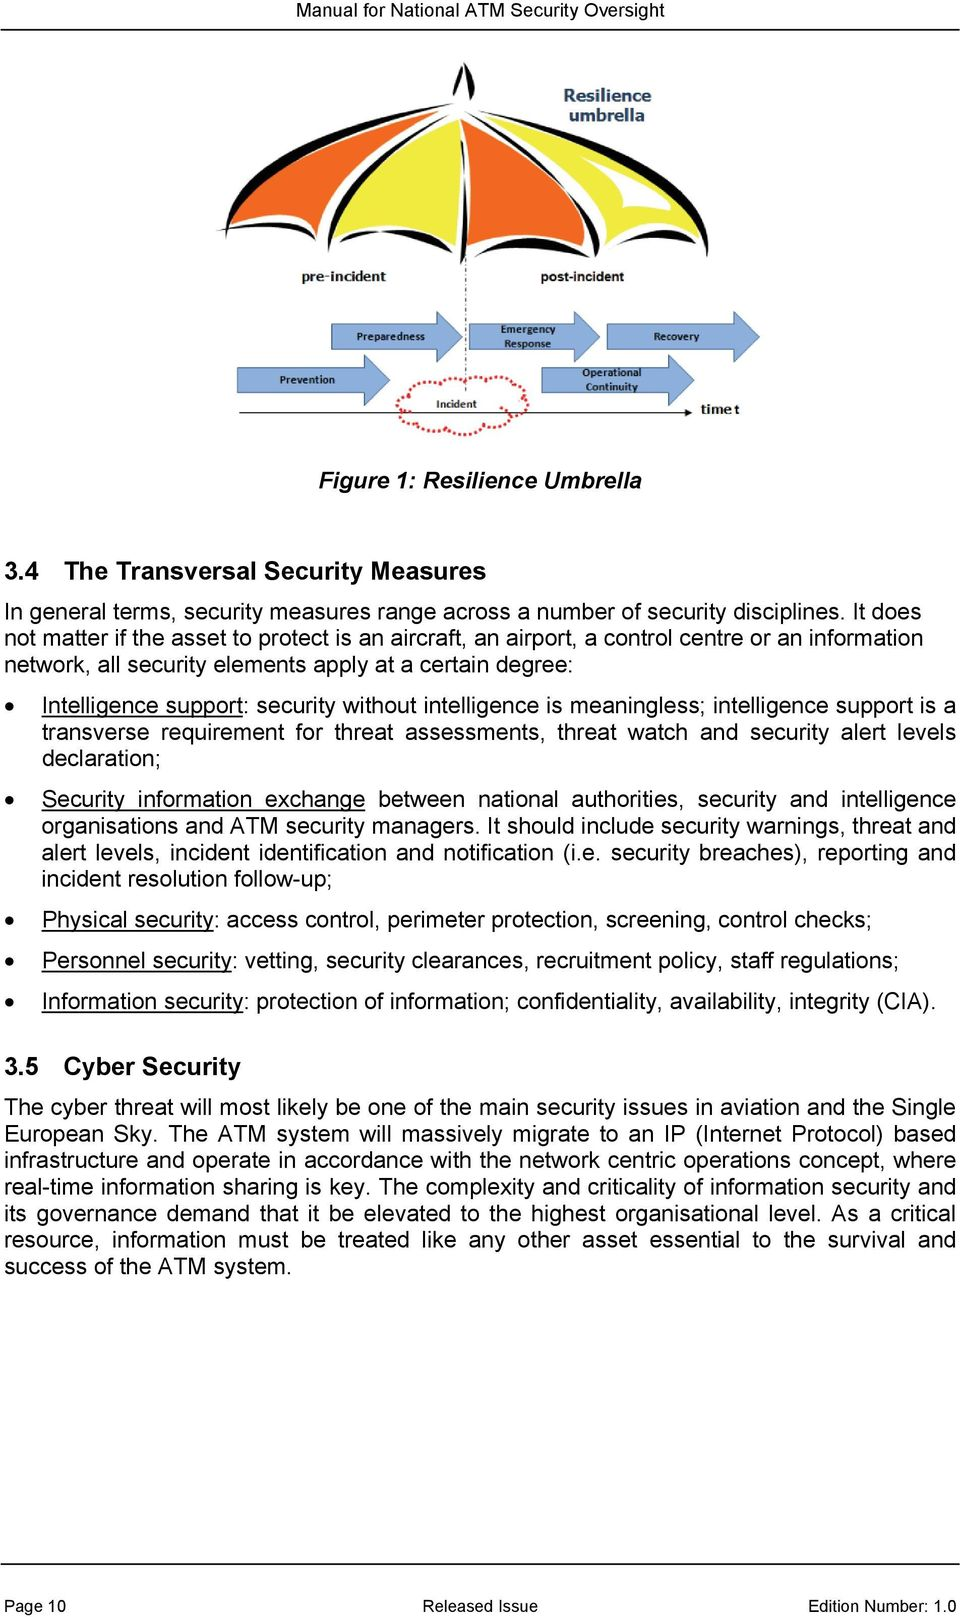 without intelligence is meaningless; intelligence support is a transverse requirement for threat assessments, threat watch and security alert levels declaration; Security information exchange between